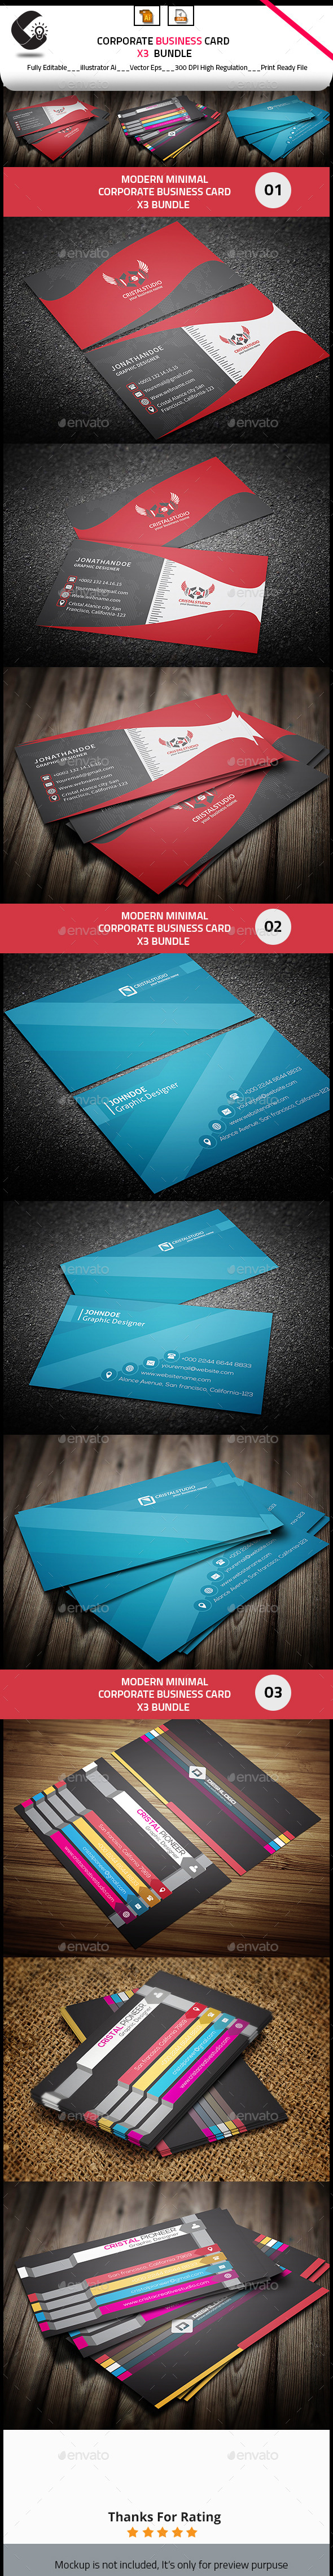 GraphicRiver Business Card Bundle 3 in 1 10648918